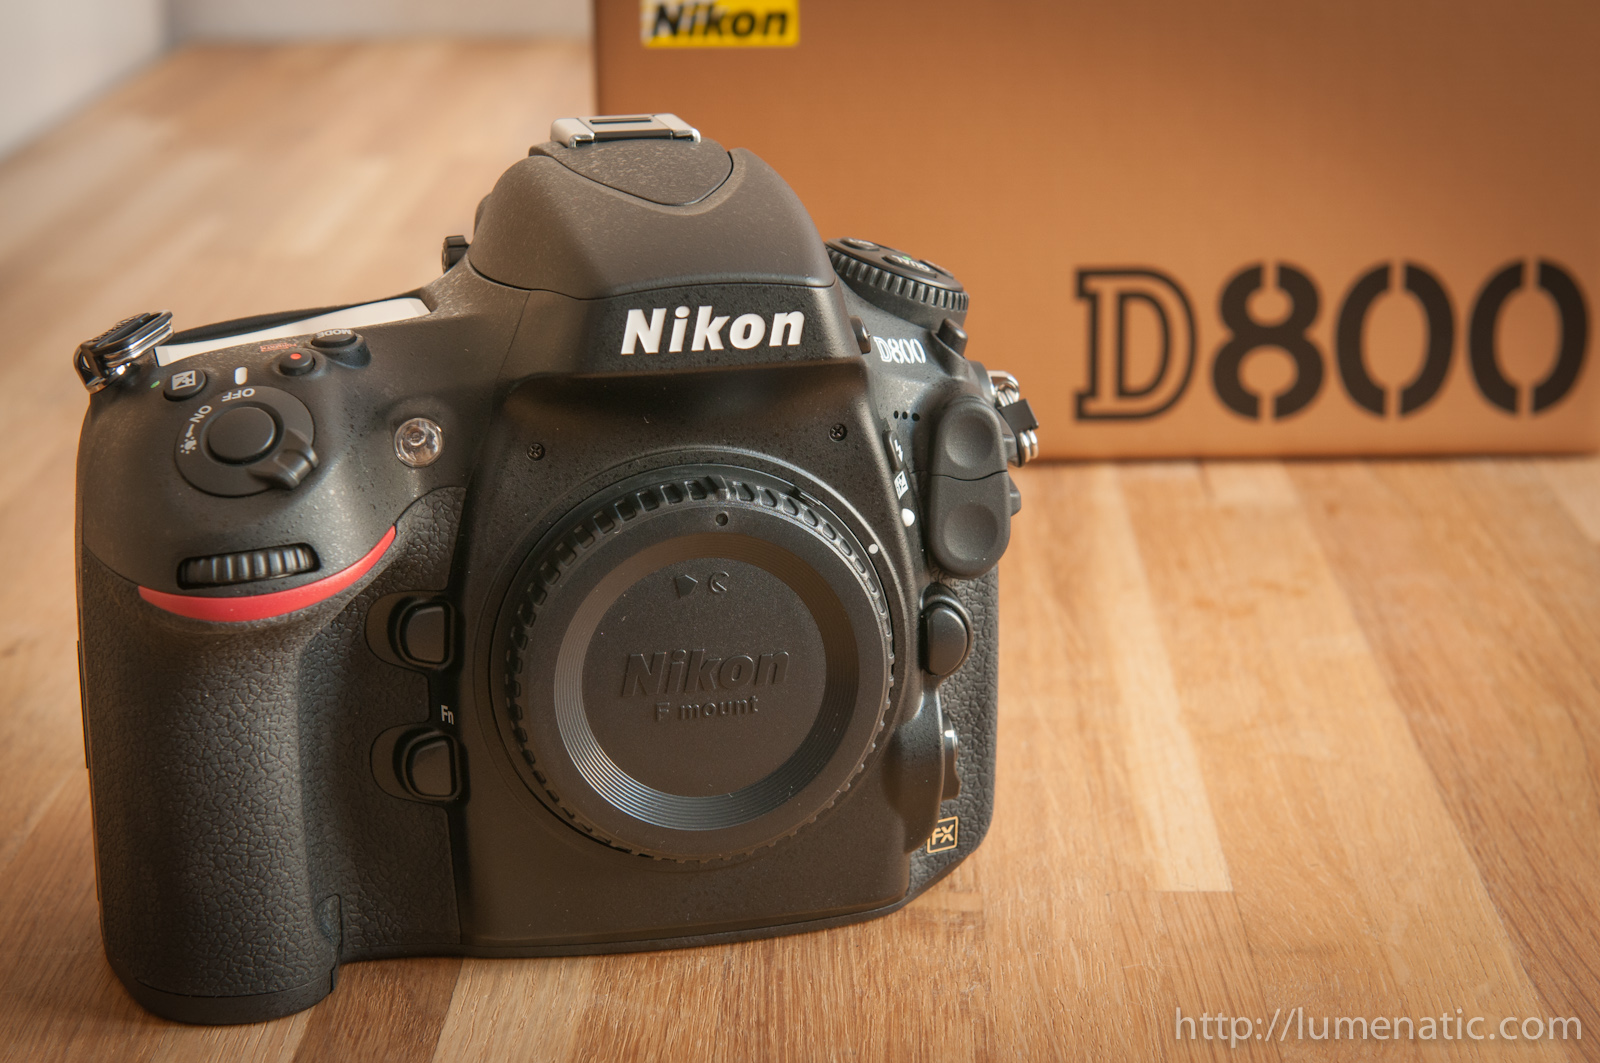 D800 – thoughts and experiences